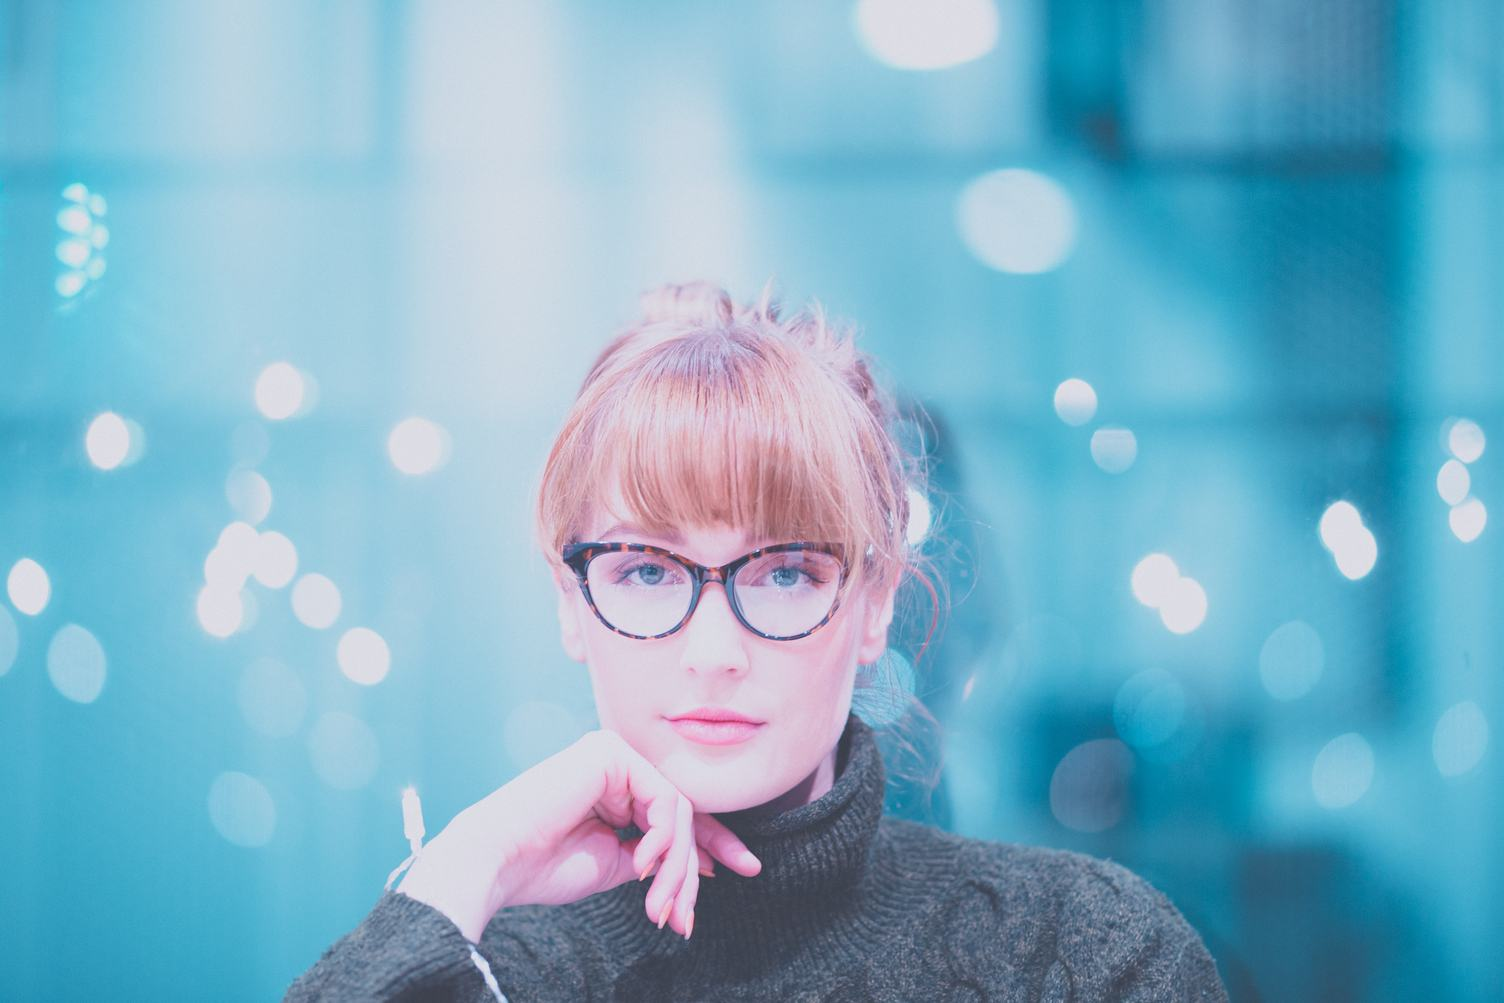 Woman Wearing Glasses and Gray Jumper